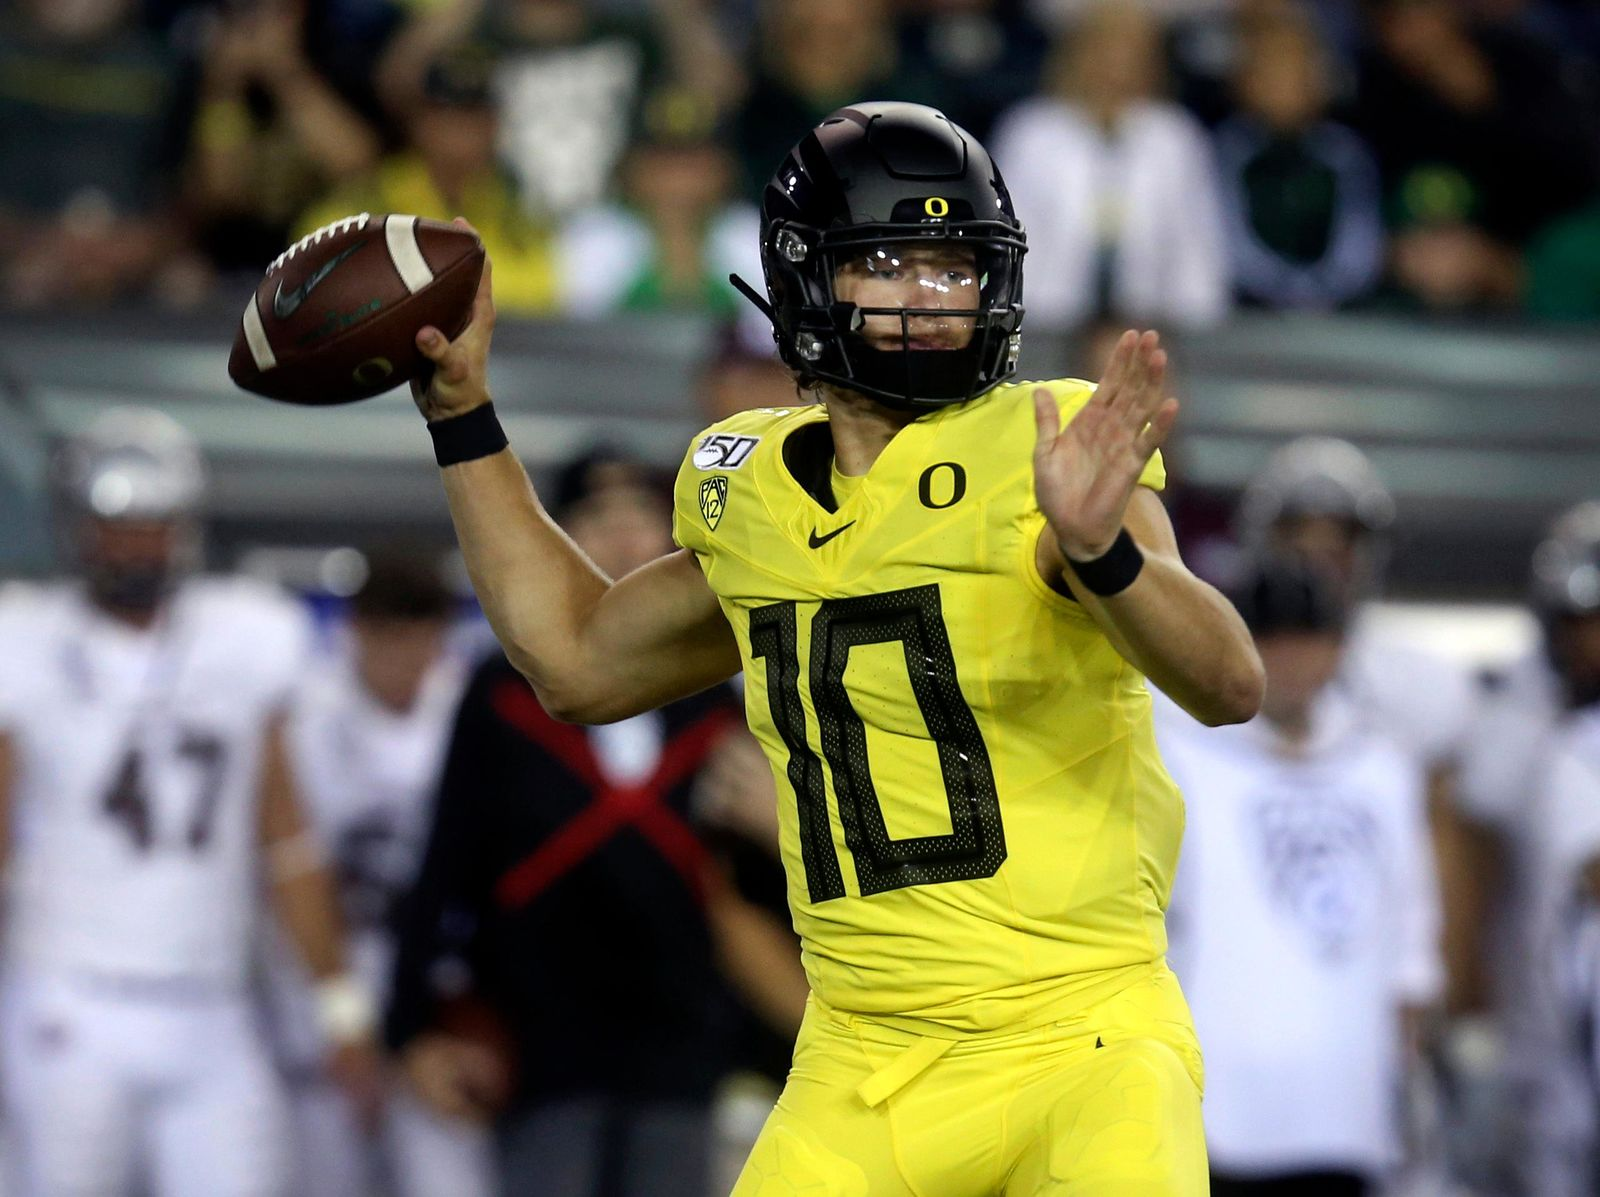 Oregon's Justin Herbert drops back to pass during the first quarter of an NCAA college football game against Montana Saturday, Sept. 14, 2019, in Eugene, Ore. (AP Photo/Chris Pietsch)